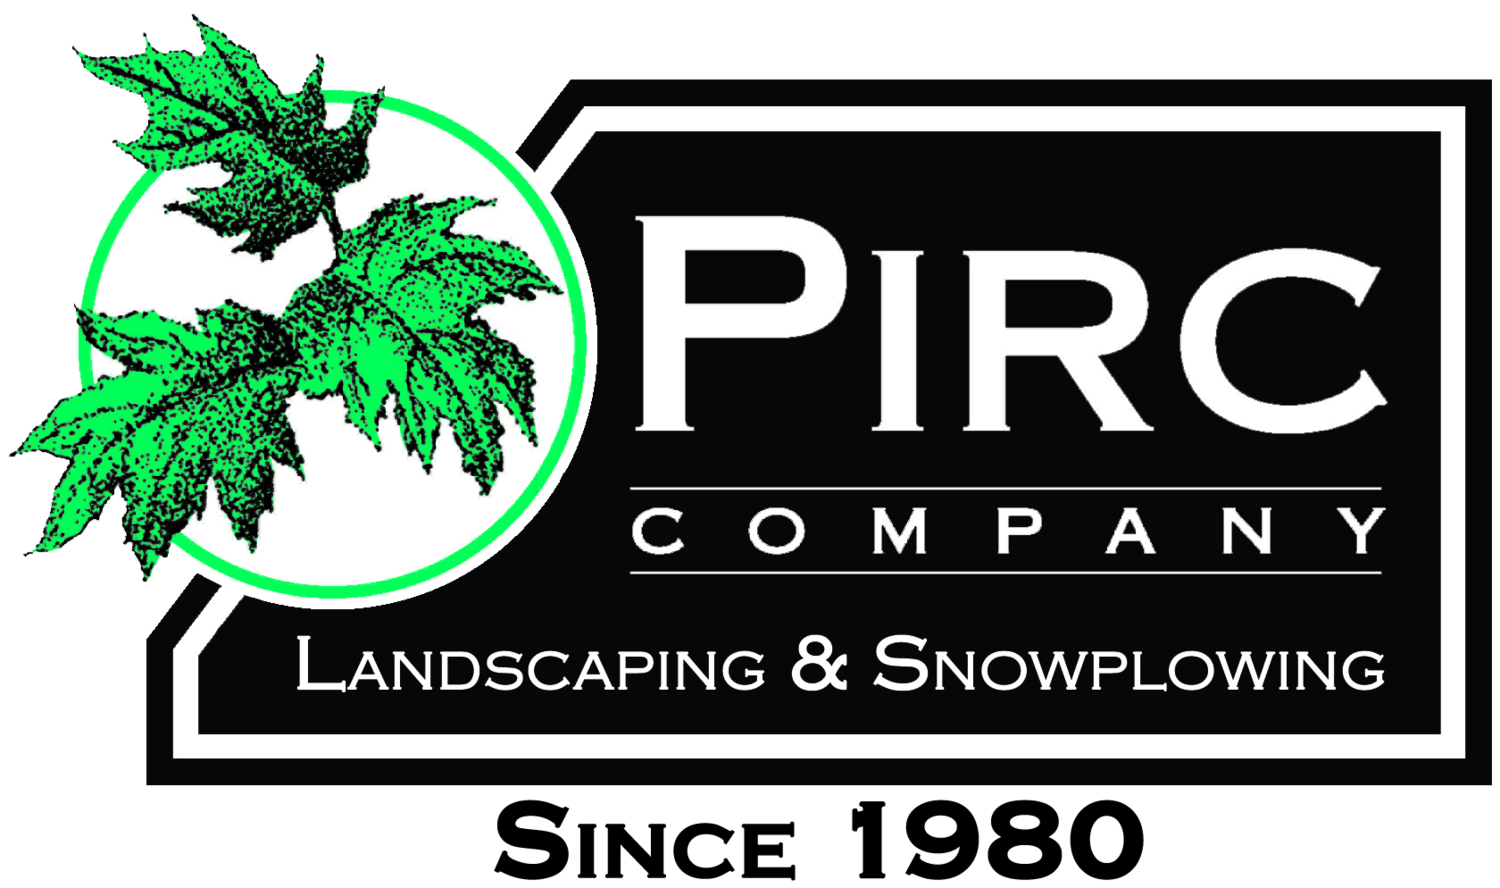 Pirc Company Landscaping & Snowplowing